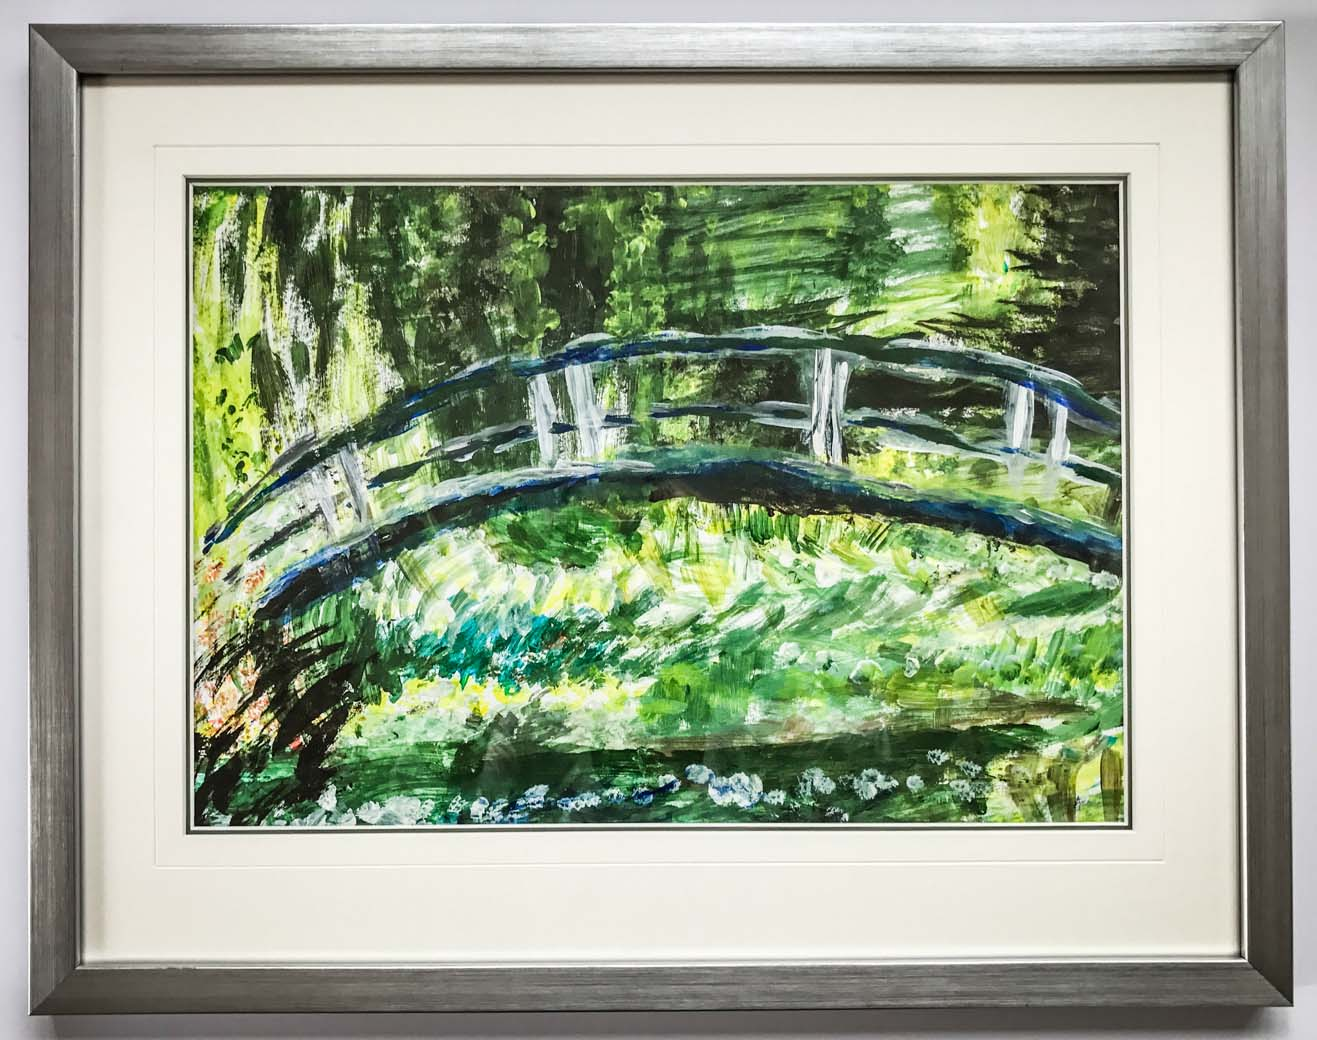 Monet Interpretation in an Elegant Silver Frame | Framed by Jules Sainter at Lovingly Framed